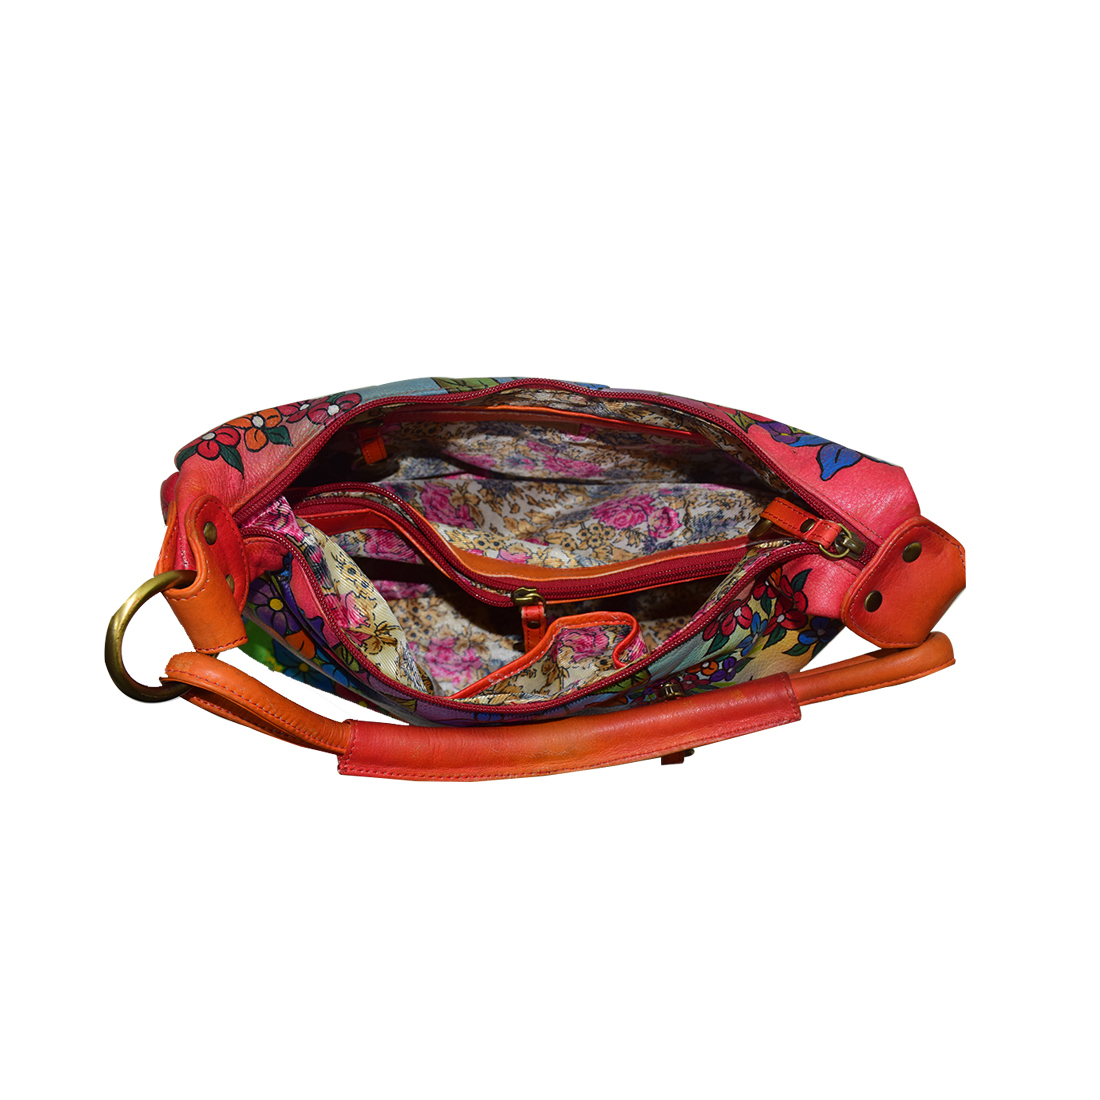 Hand Painted Colorful Leather Shoulder Bag